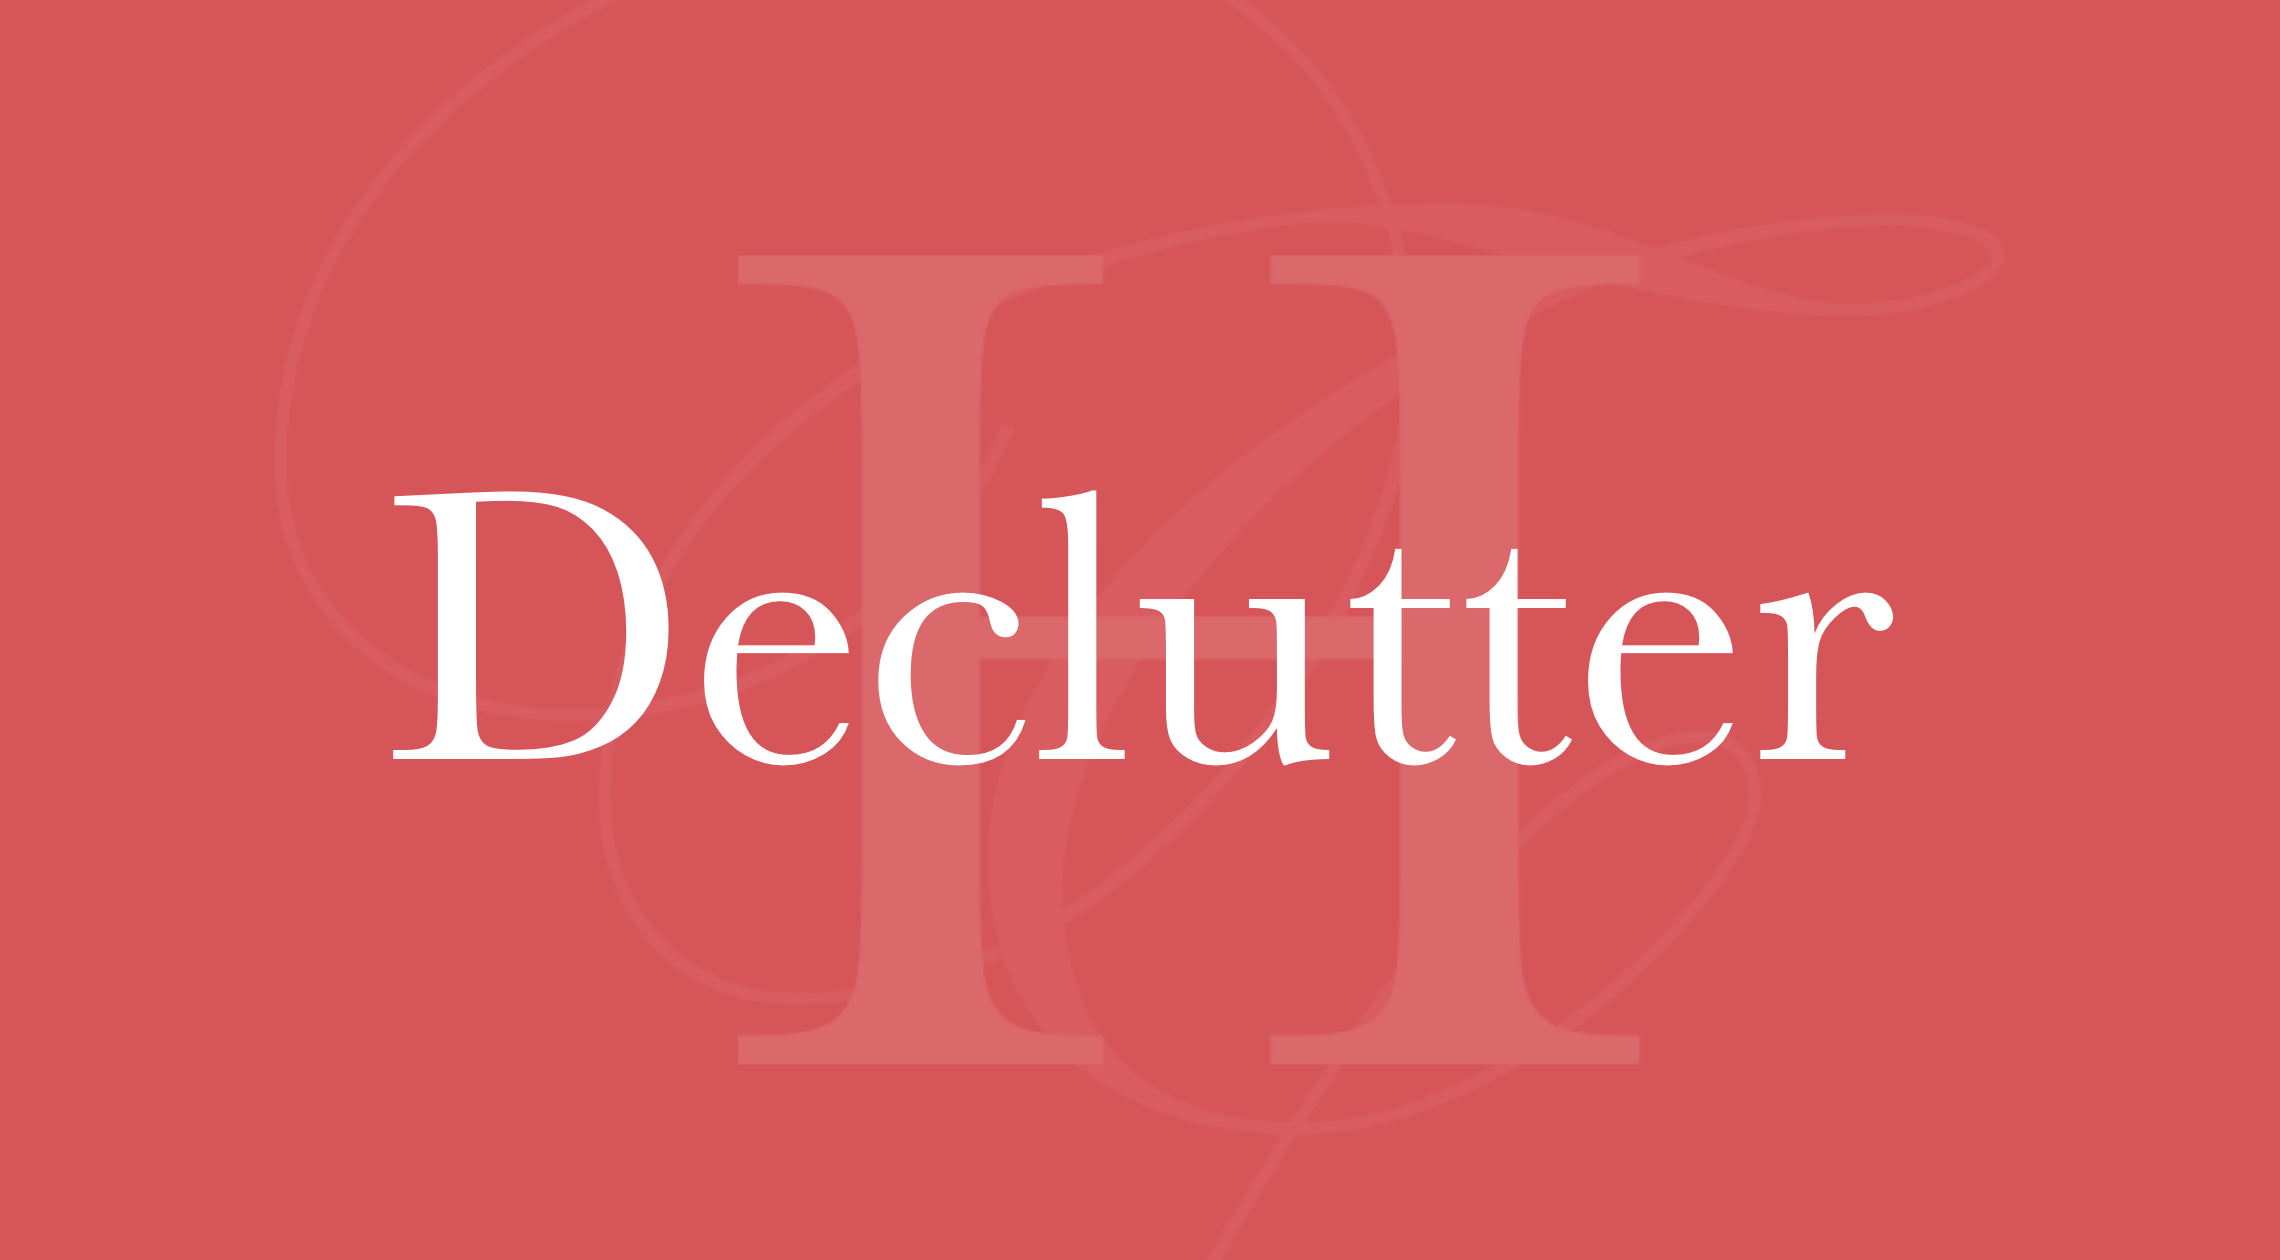 Declutter - The Free Course!